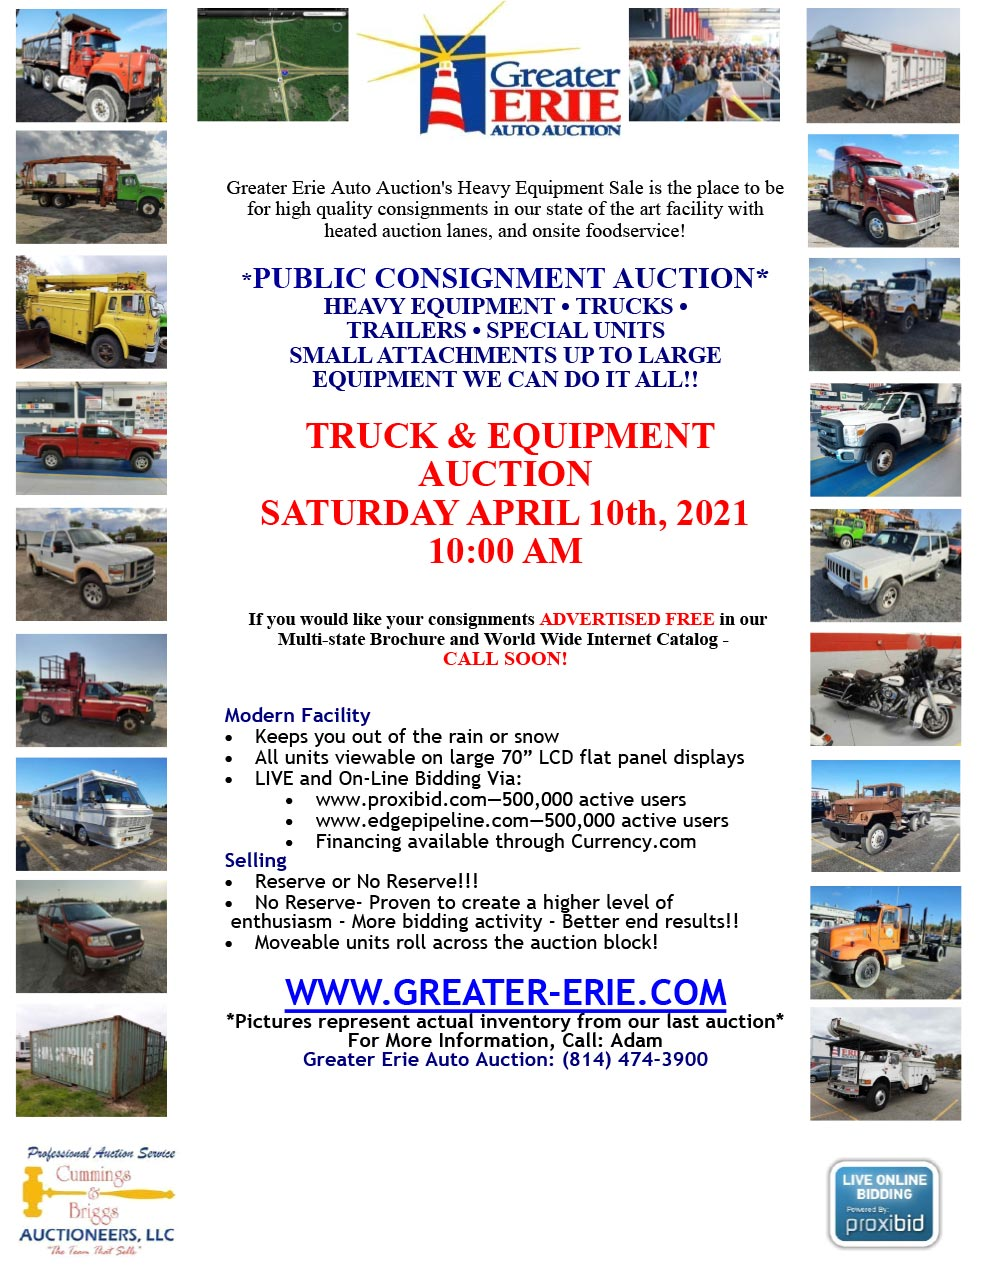 2021 Heavy Equipment Sale at Greater Erie Auto Auction | Saturday April 10